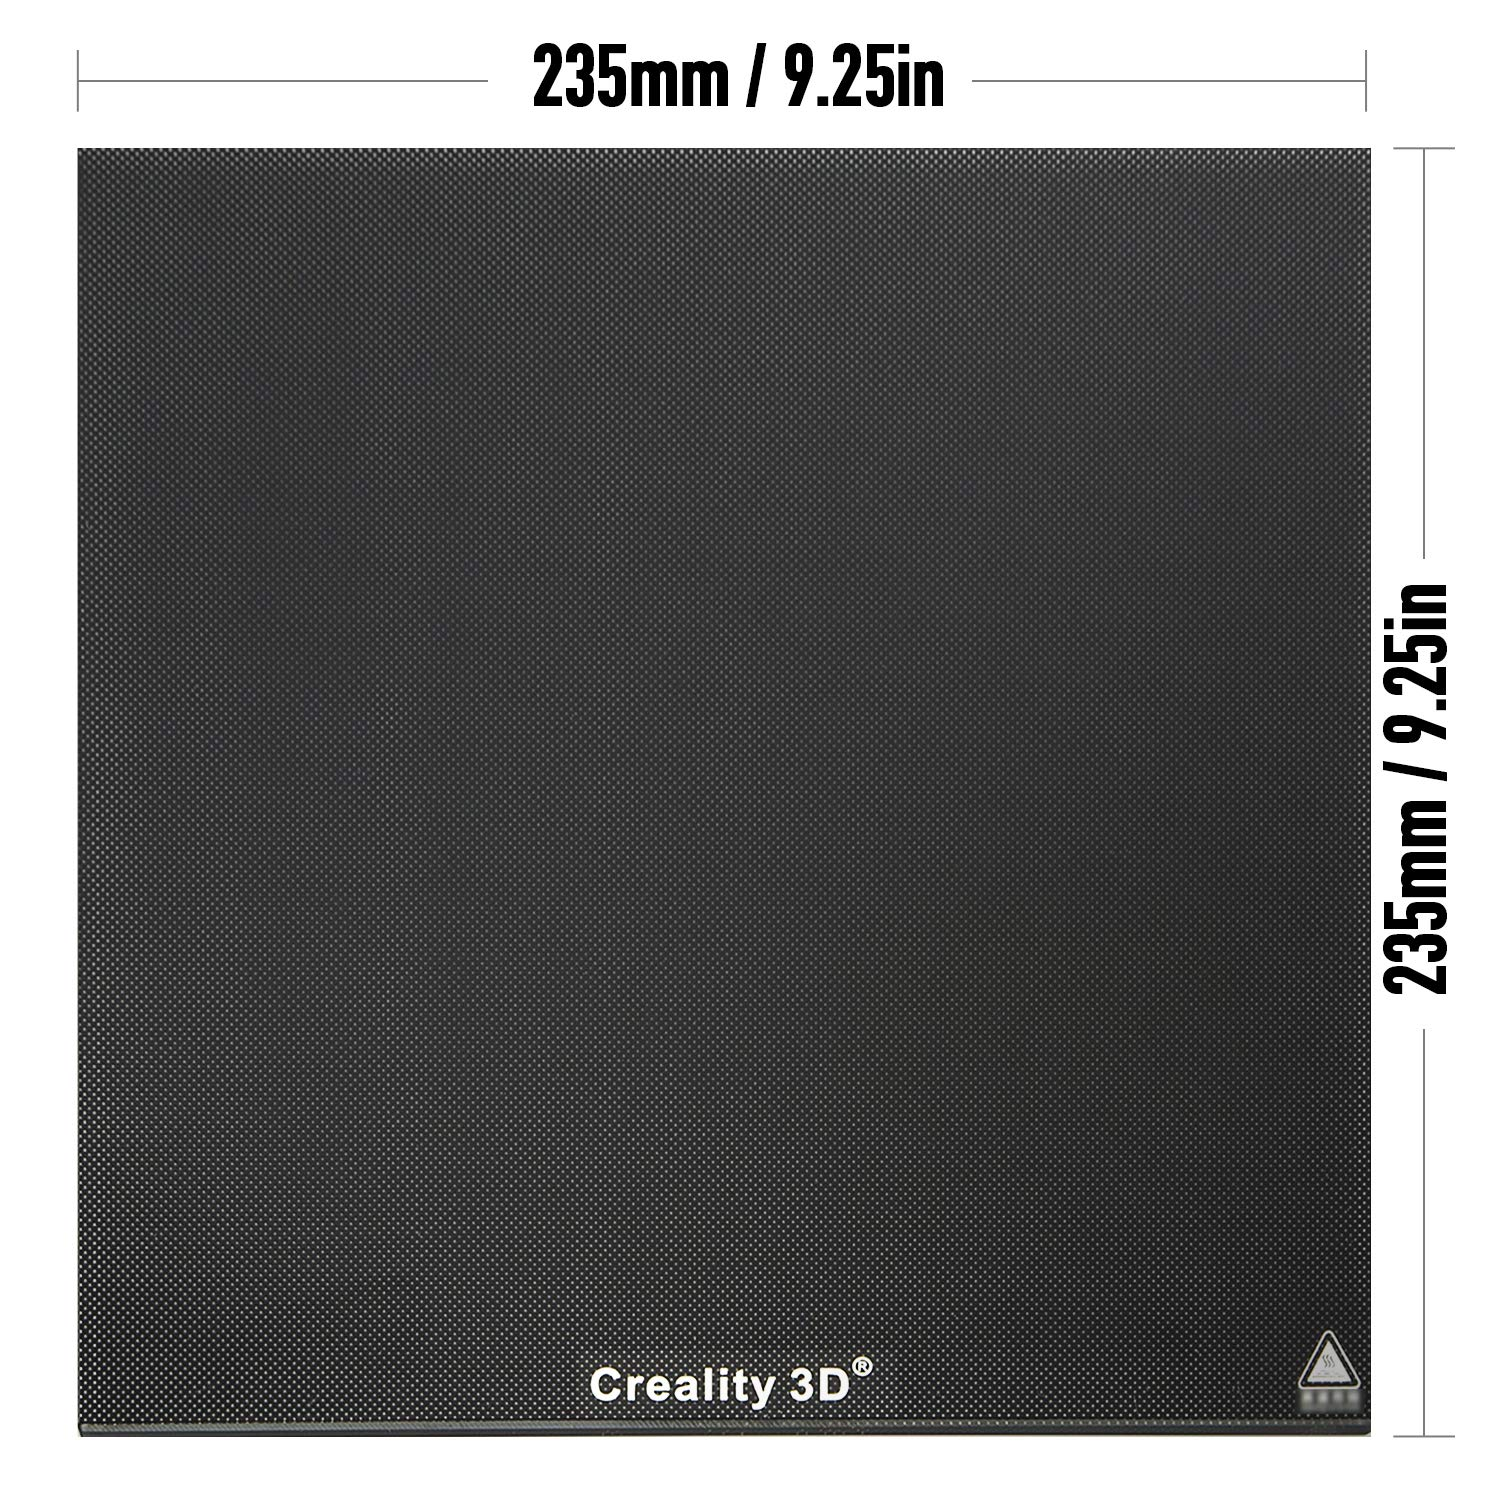 Creality Upgraded 3D Printer Platform Glass Plate Panel 235X235MM Heated Bed Glass Print Bed Build Surface with Microporous Coating for Ender-3// Ender-3 Pro//Ender-3S//Ender-3X